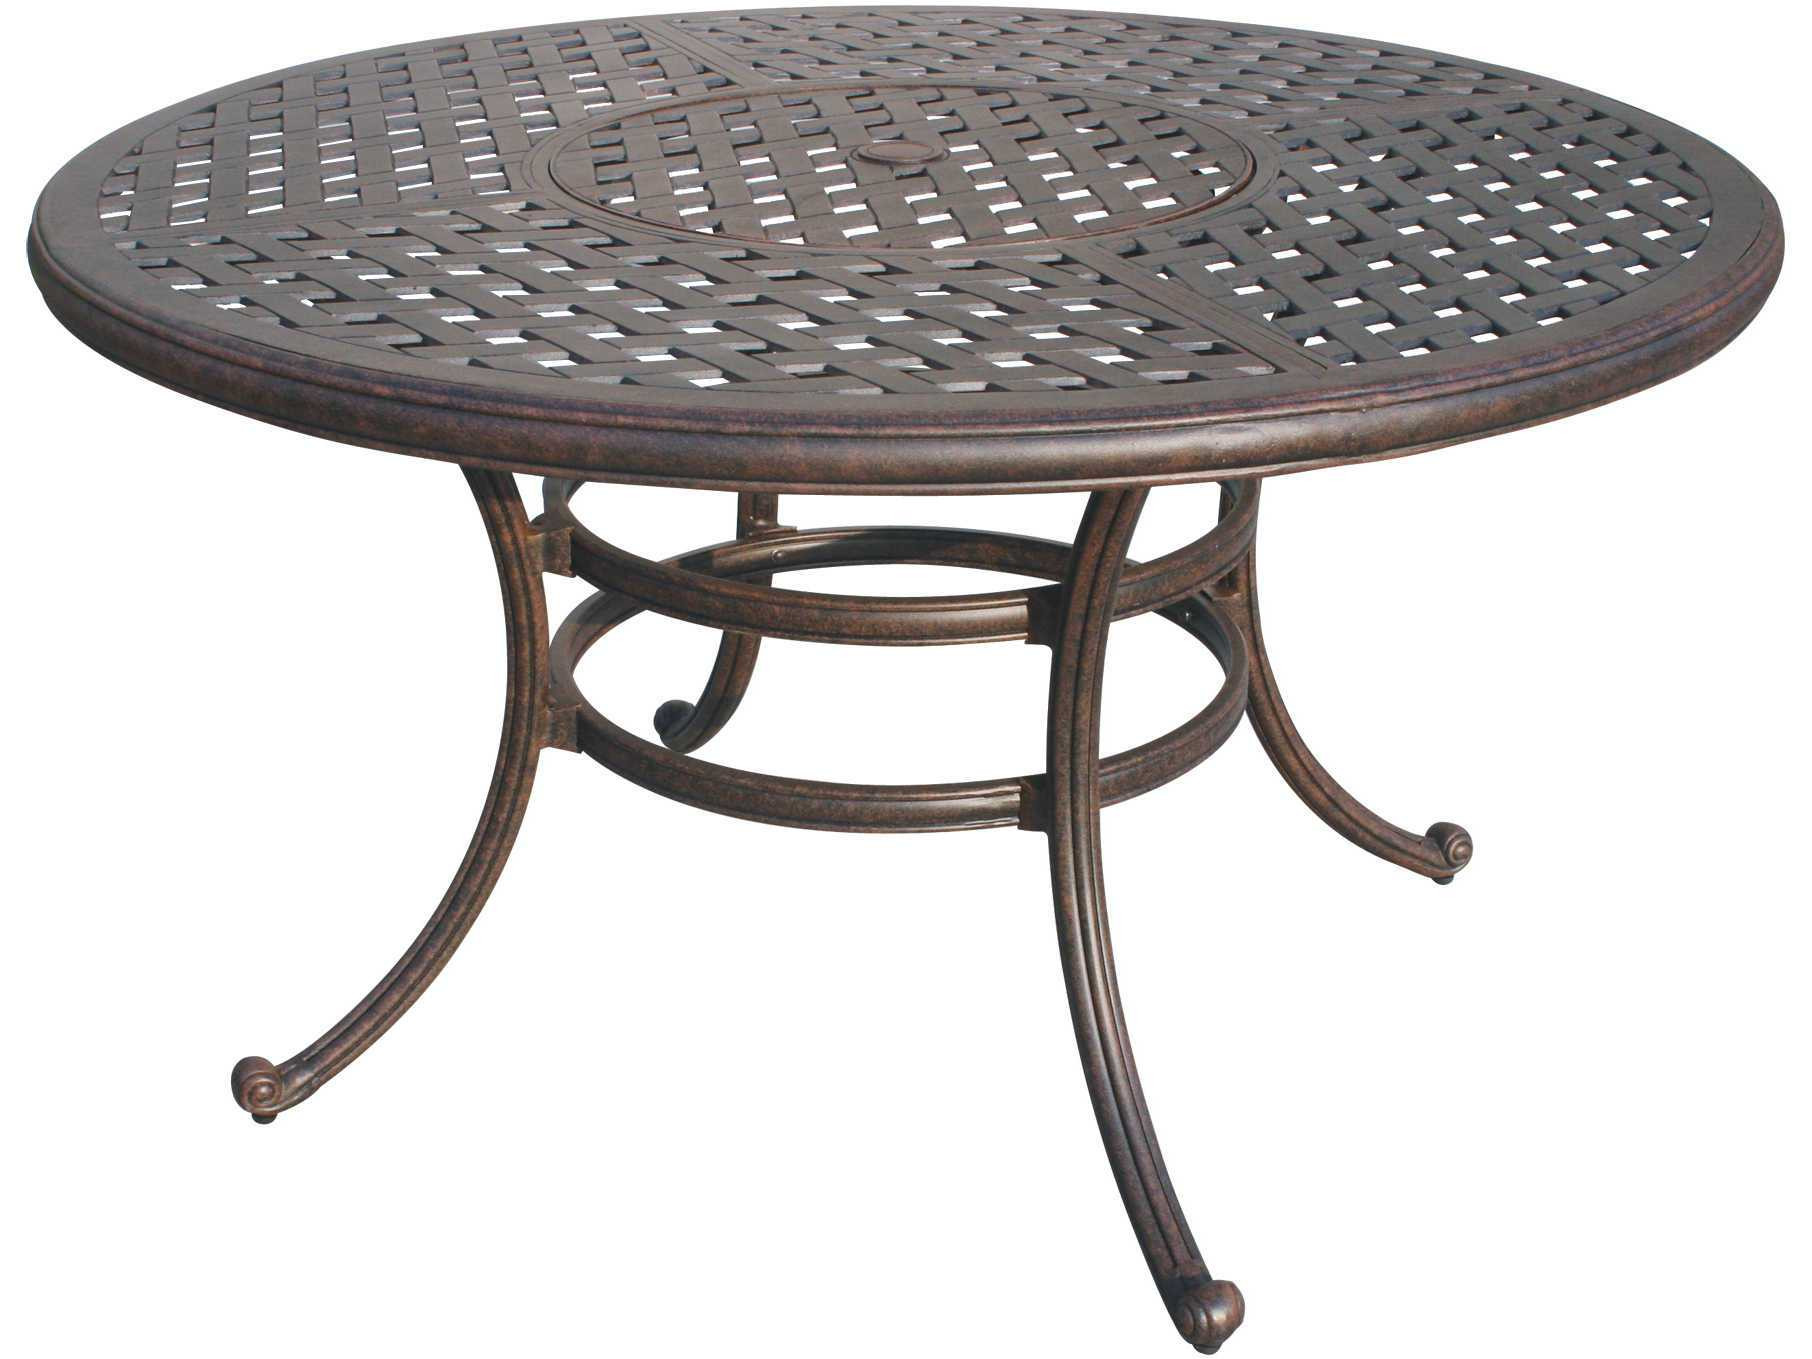 Best ideas about Round Patio Dining Table . Save or Pin Darlee Outdoor Living Series 30 Cast Aluminum Antique Now.